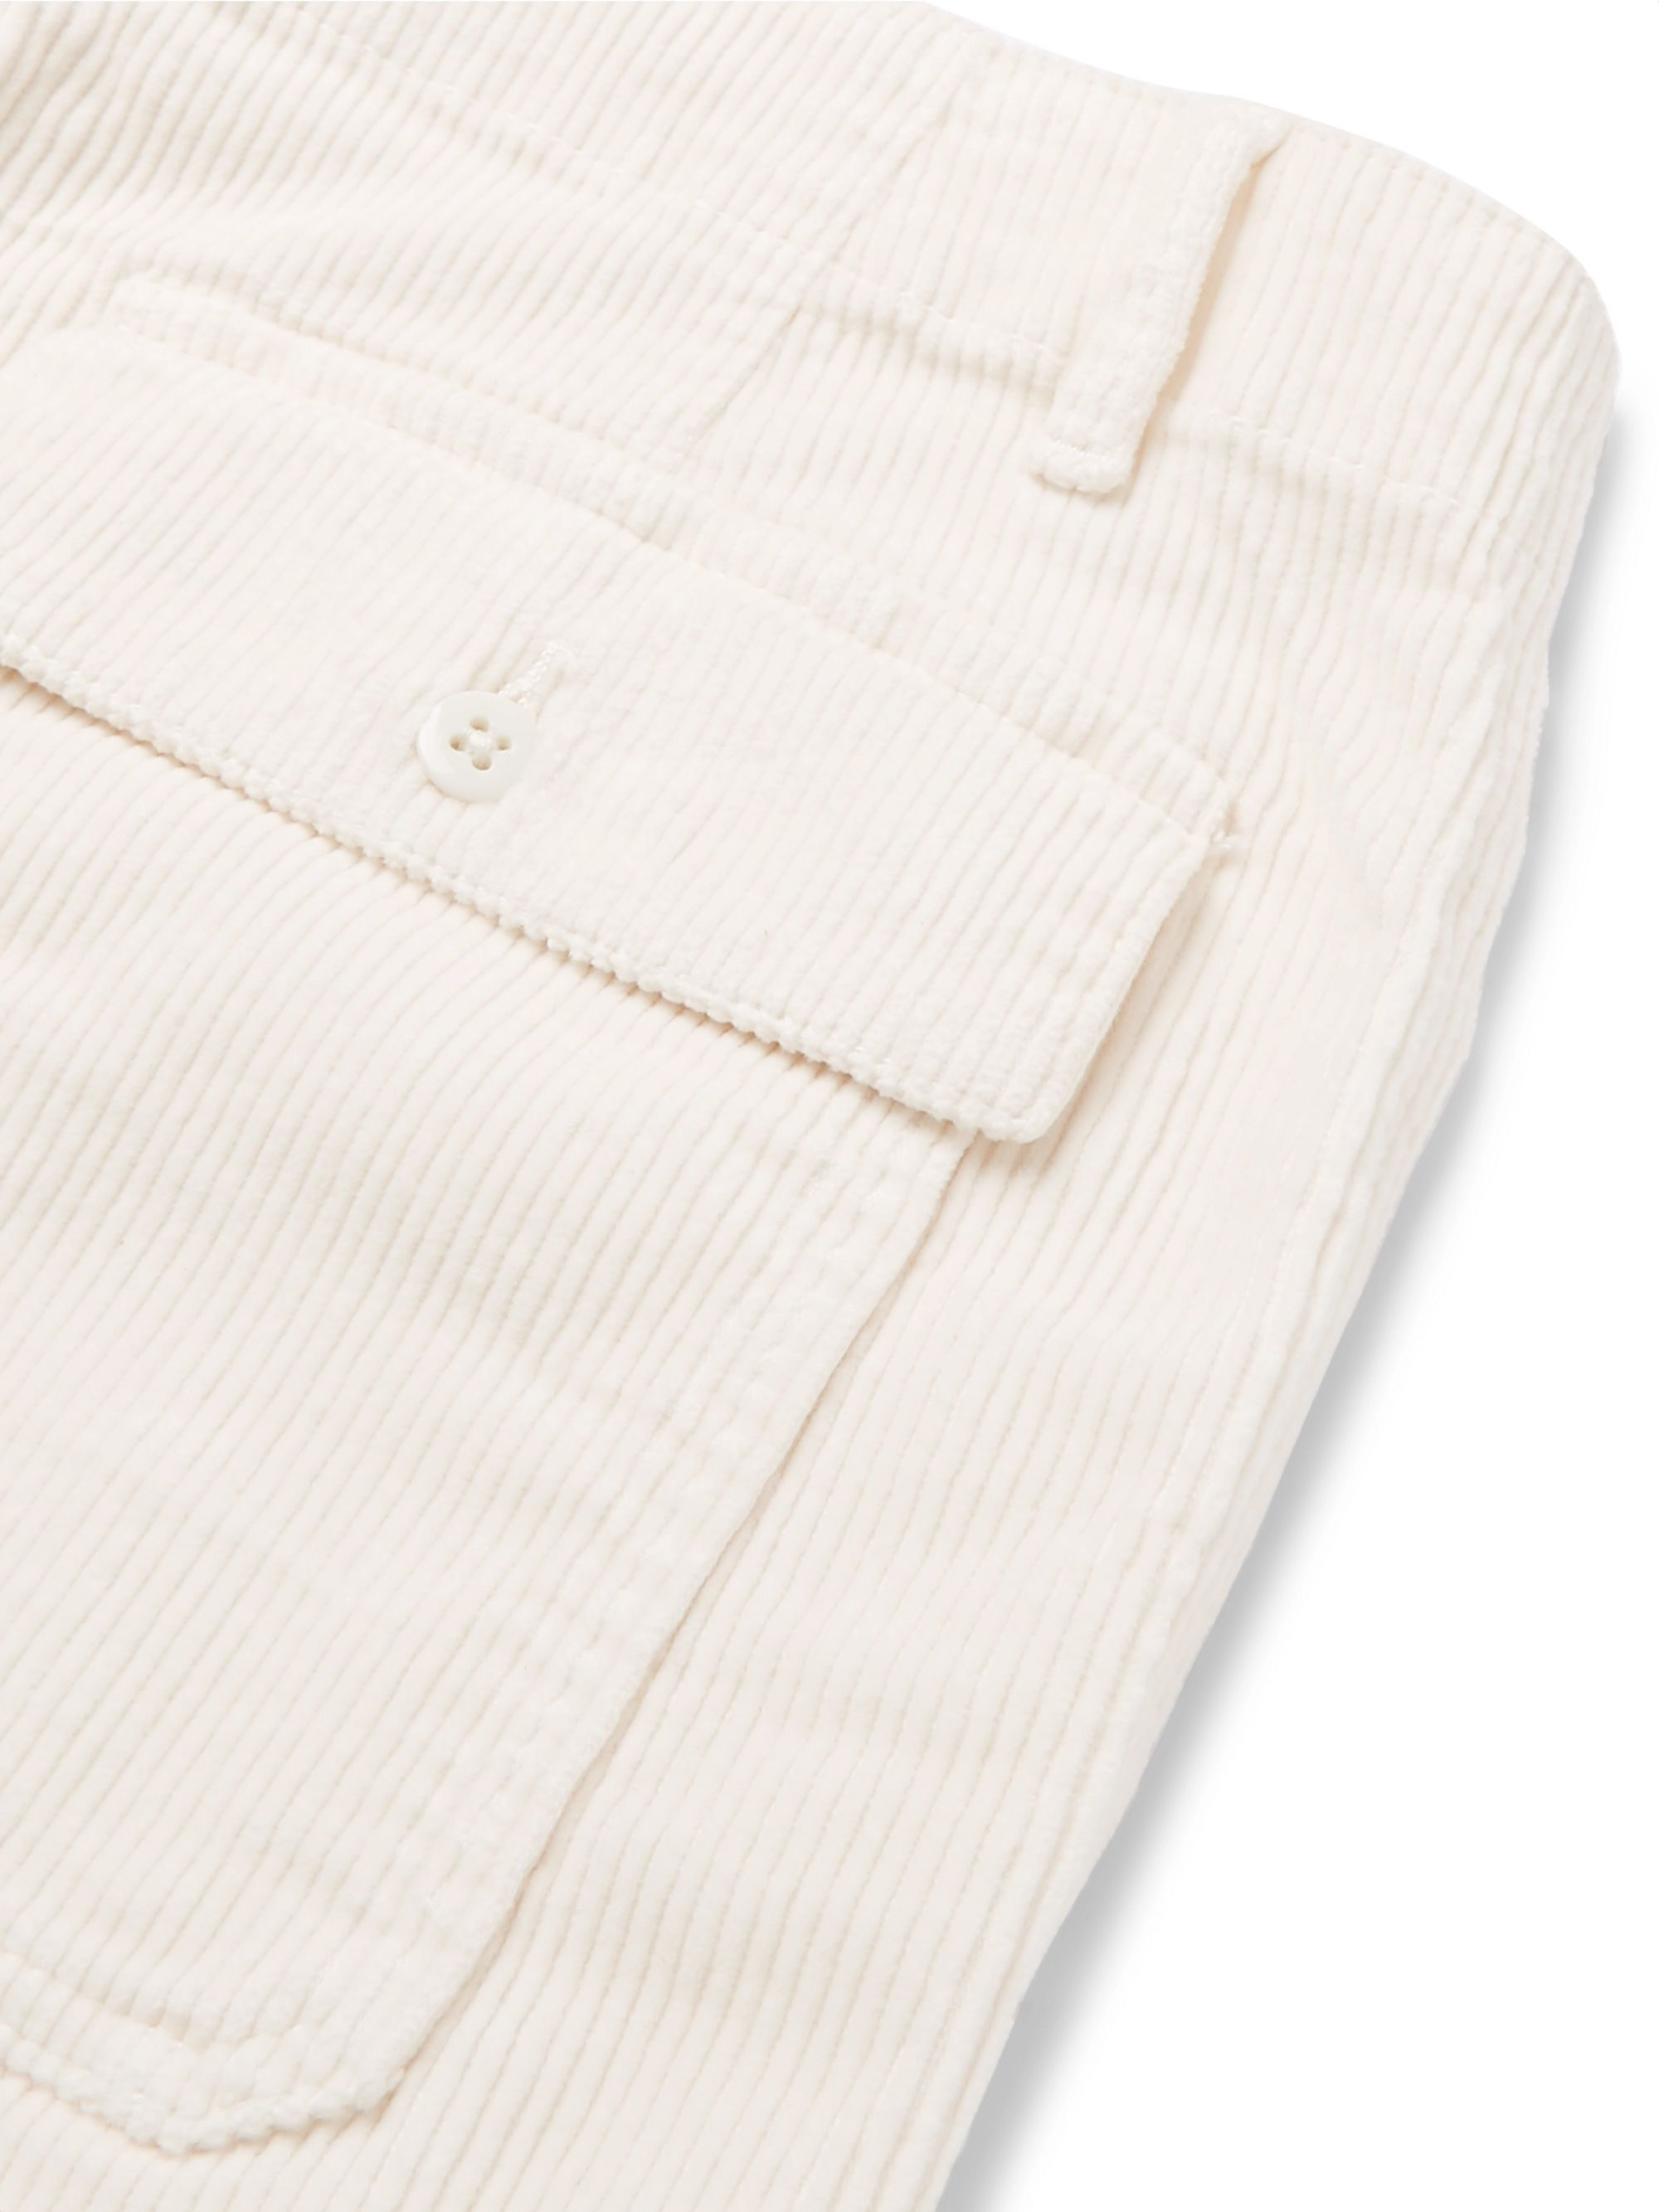 Todd Snyder Slim-Fit Stretch-Cotton Corduroy Shorts